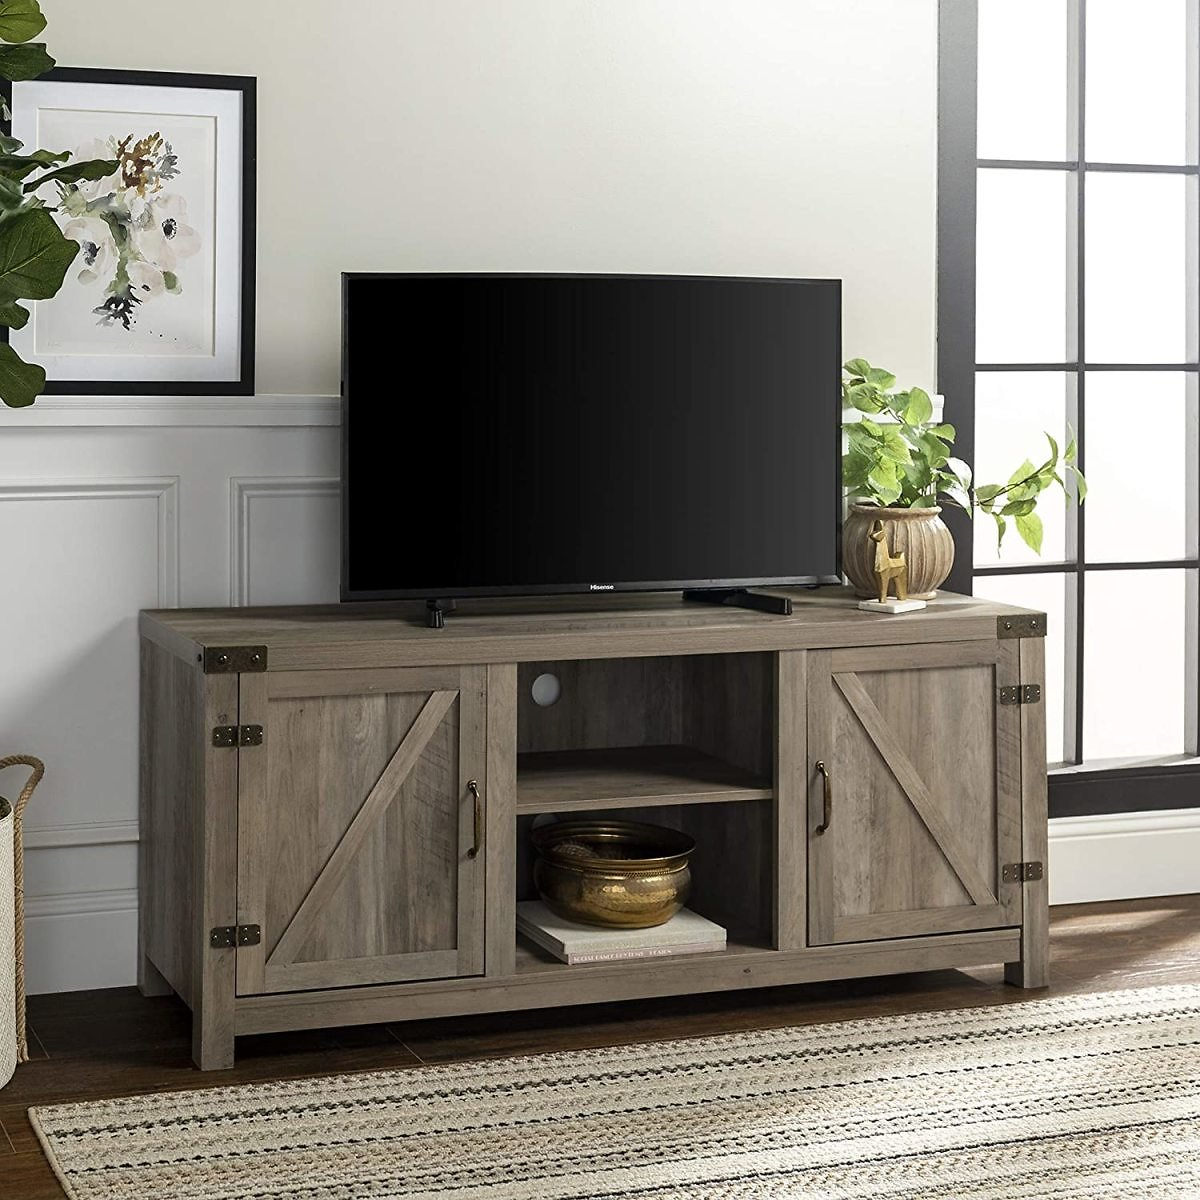 60% Off Walker Edison Furniture Company Farmhouse Barn Wood Universal Stand for TV's Up to 64